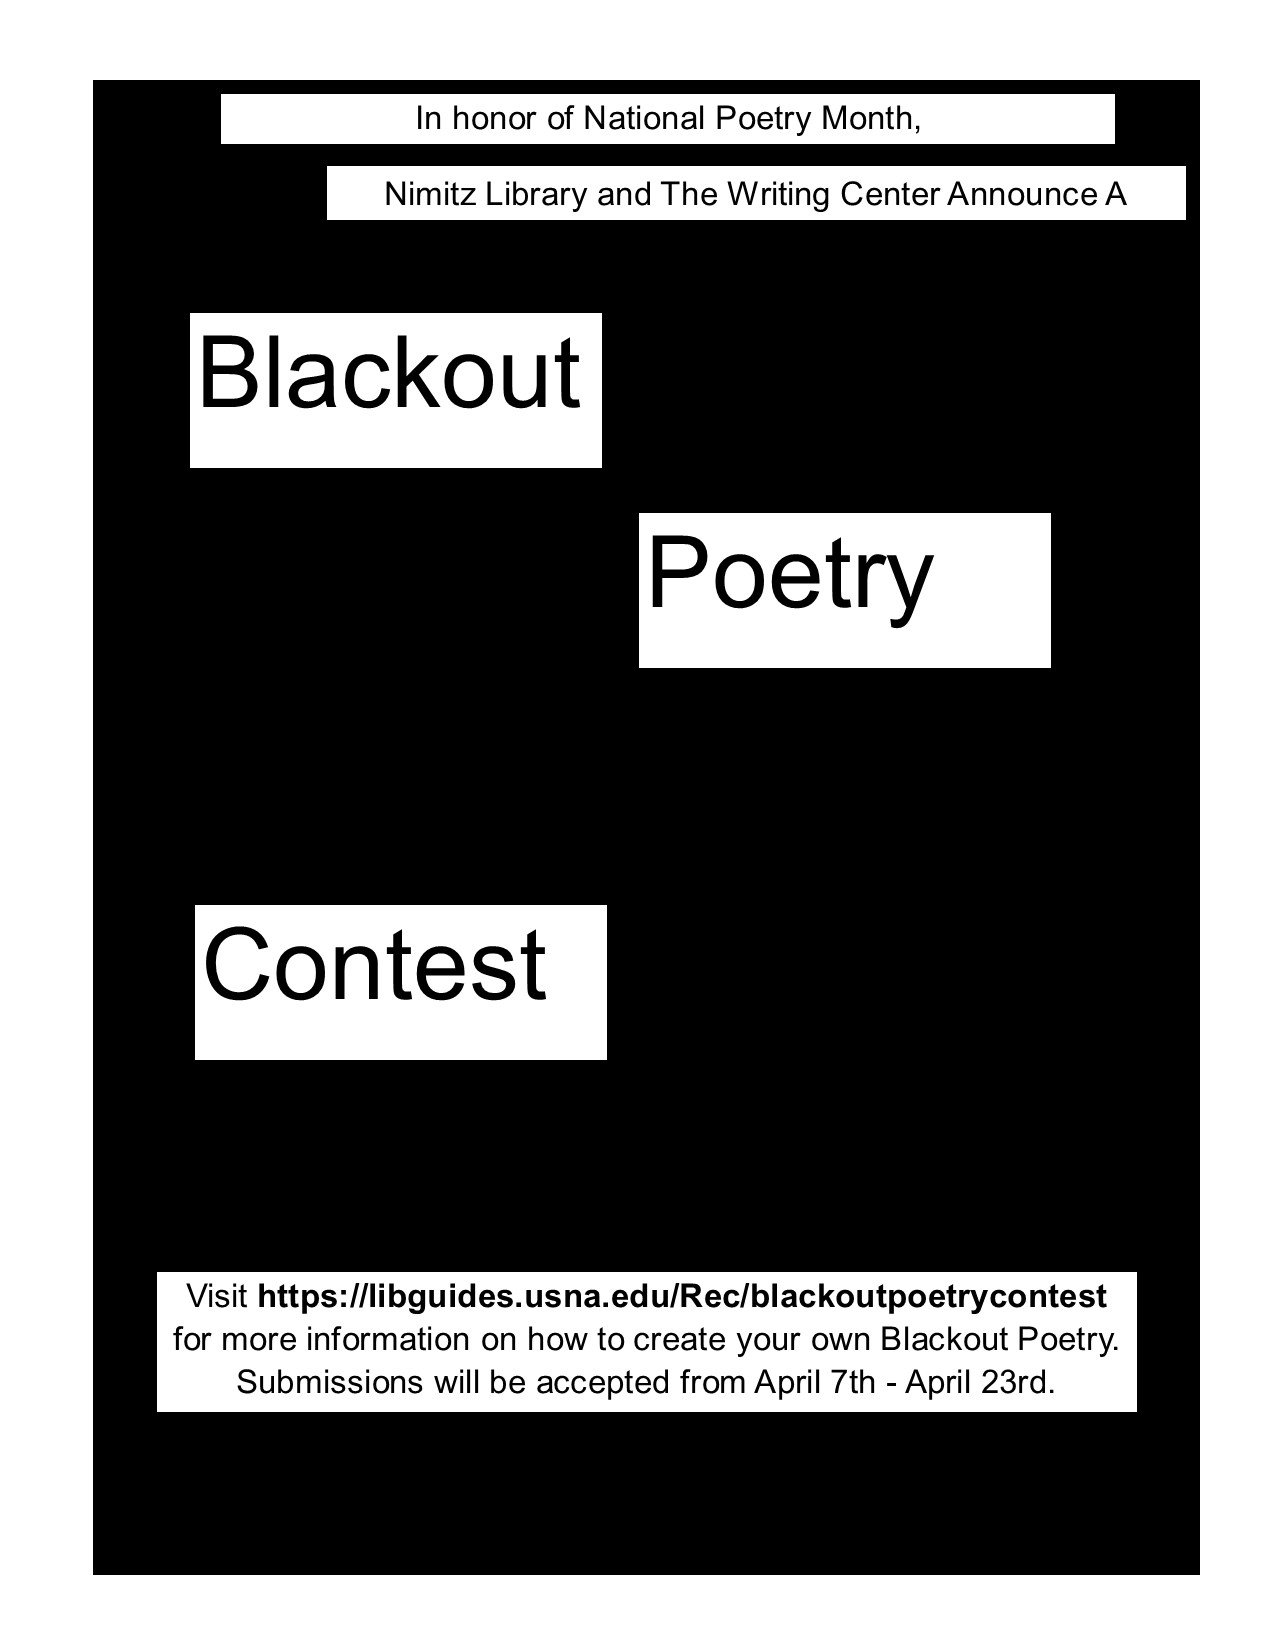 Blackout poetry contest flier